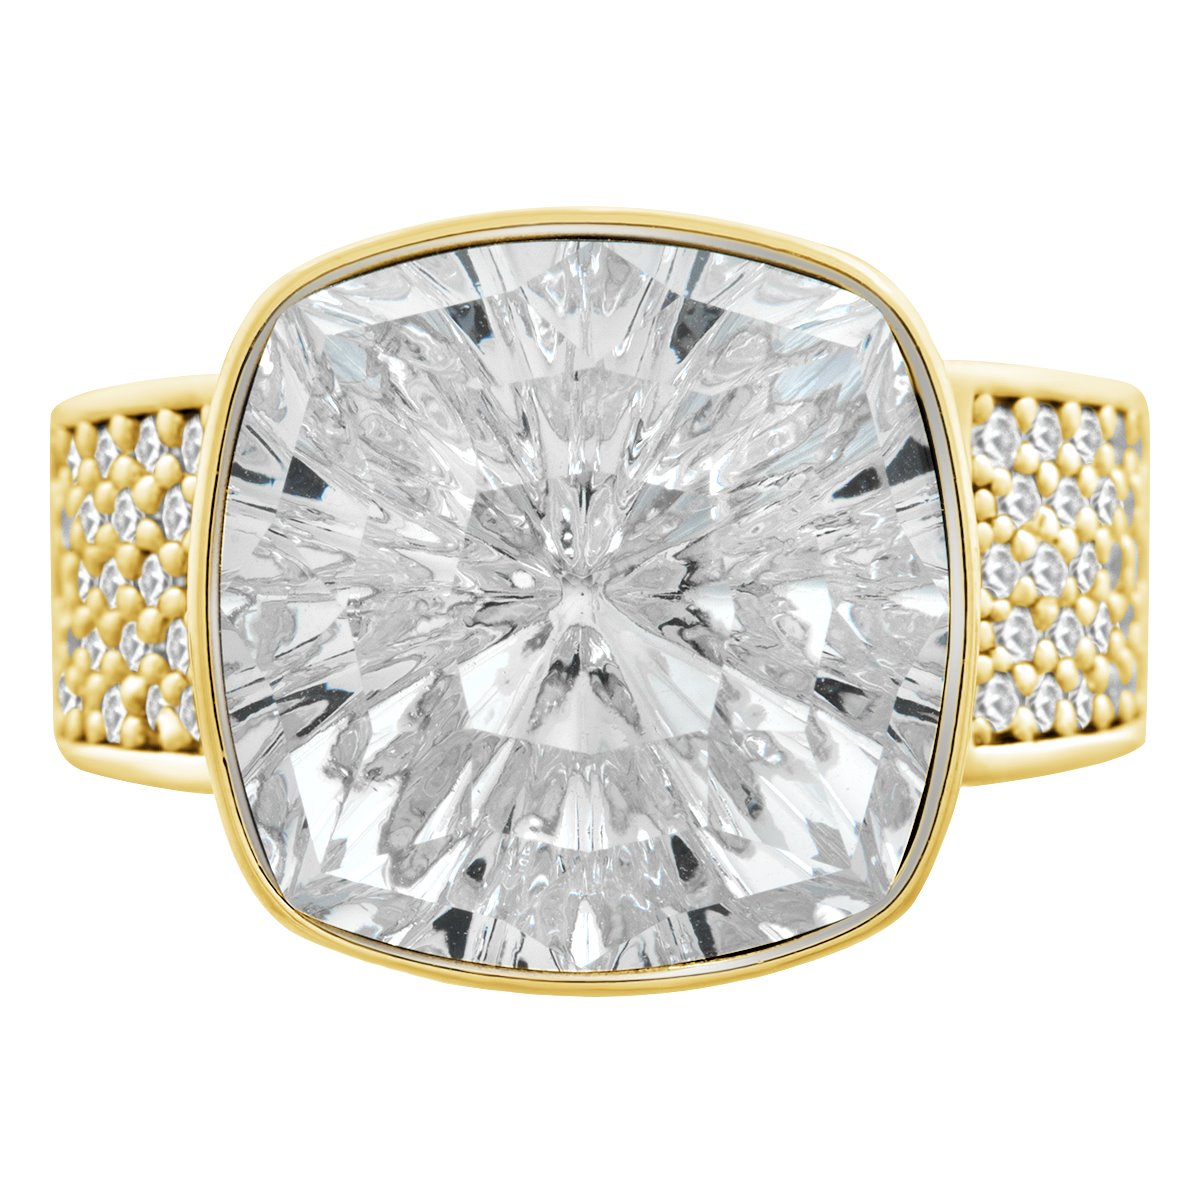 Louvre Ring Gold Crystal JOY OF SPARKLE FOREVER CRYSTALS